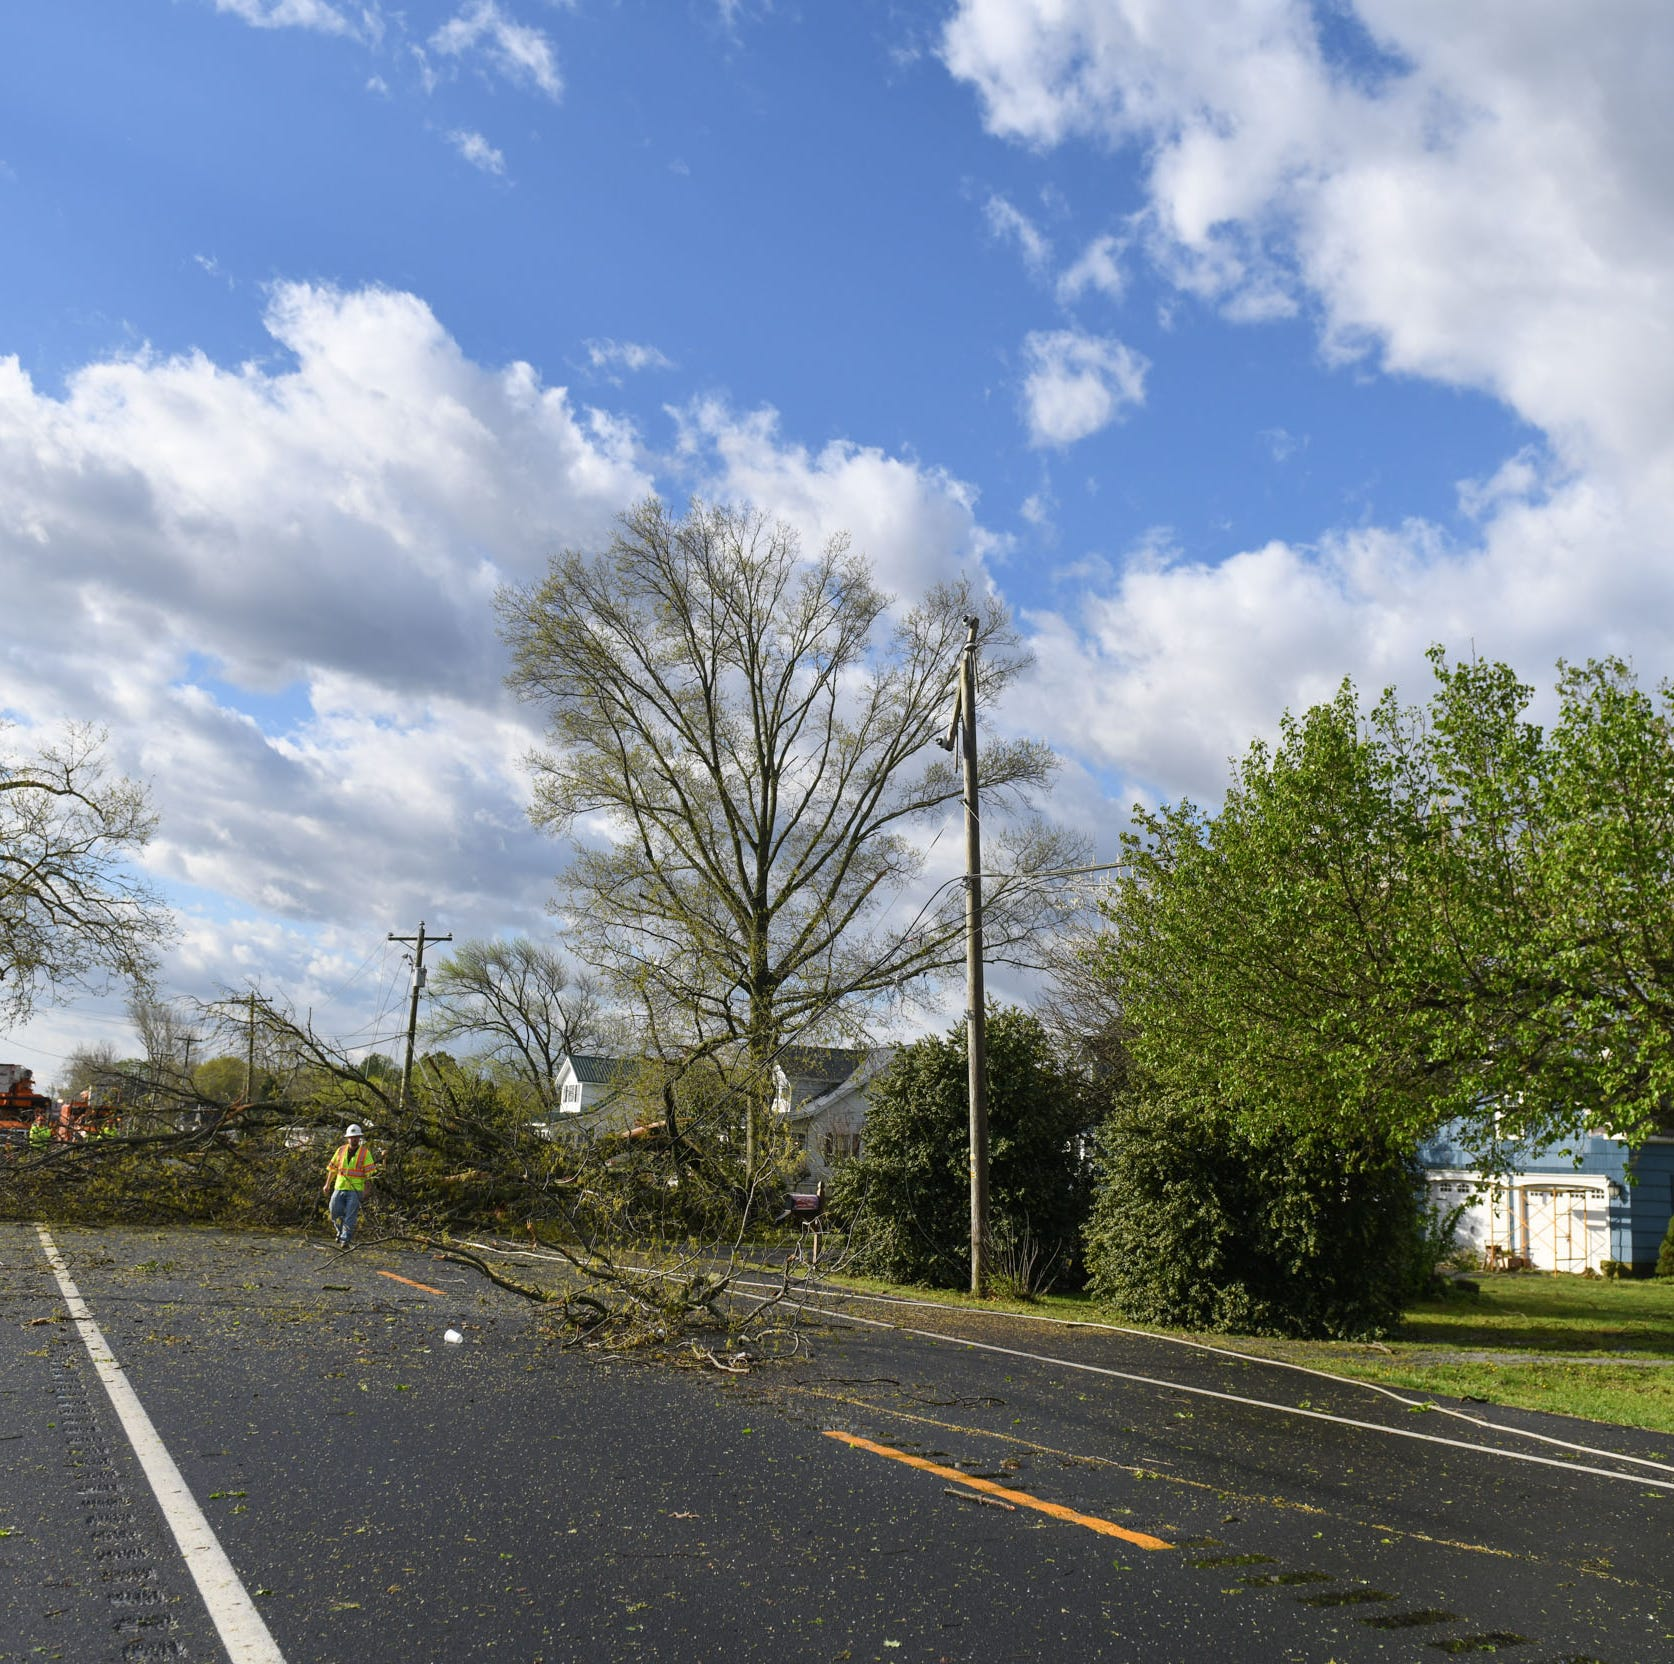 Third tornado confirmed on Delmarva: National Weather Service